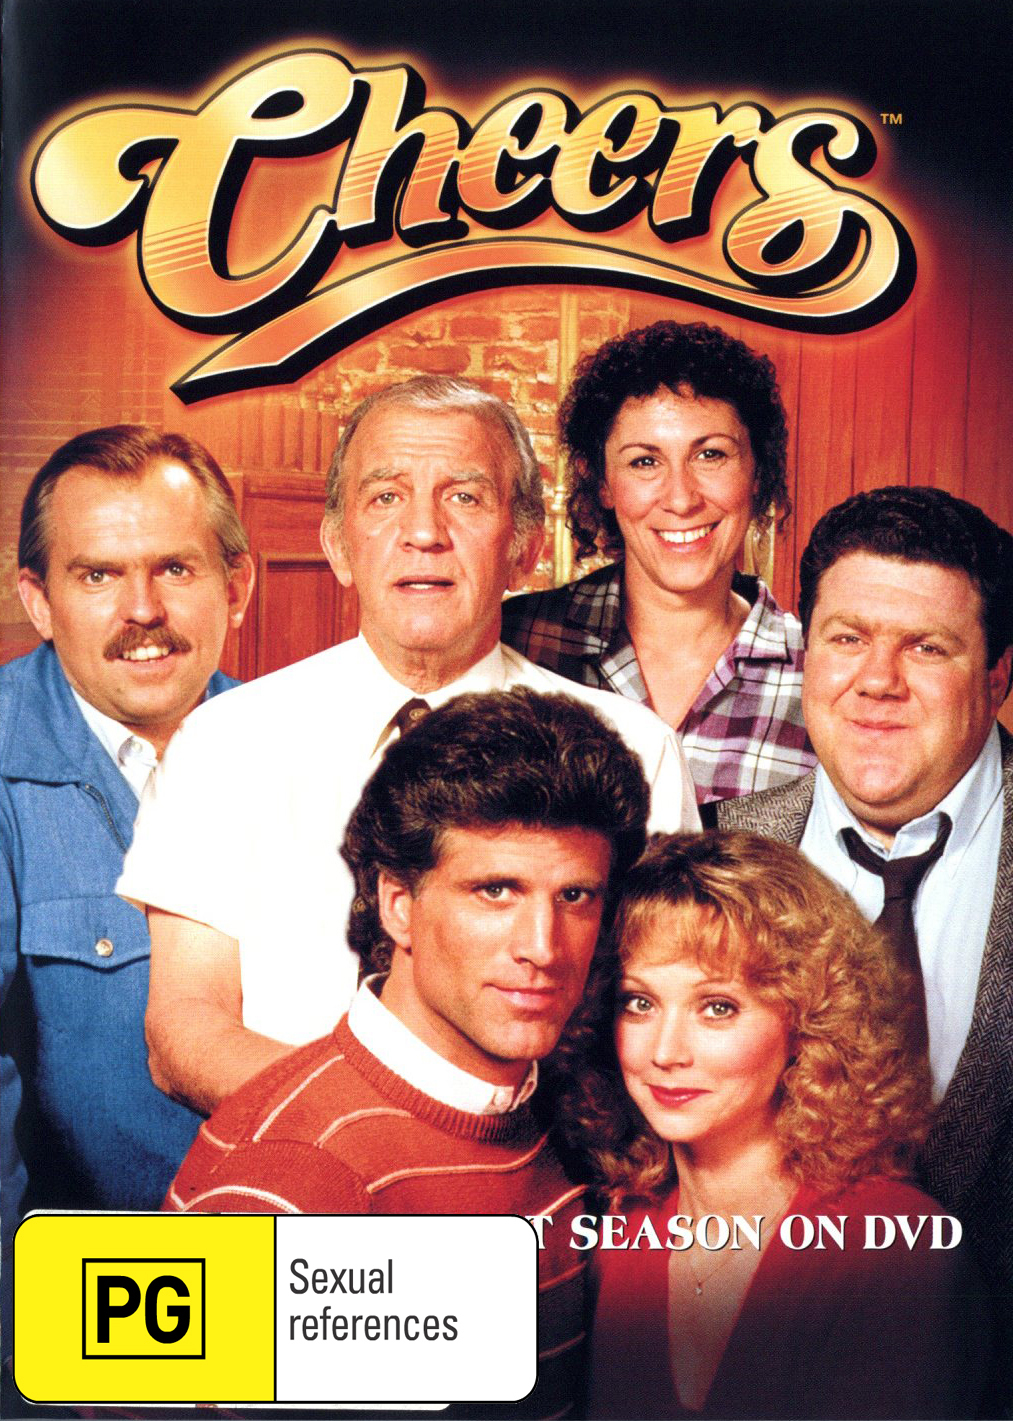 Cheers - Complete Season 1 on DVD image